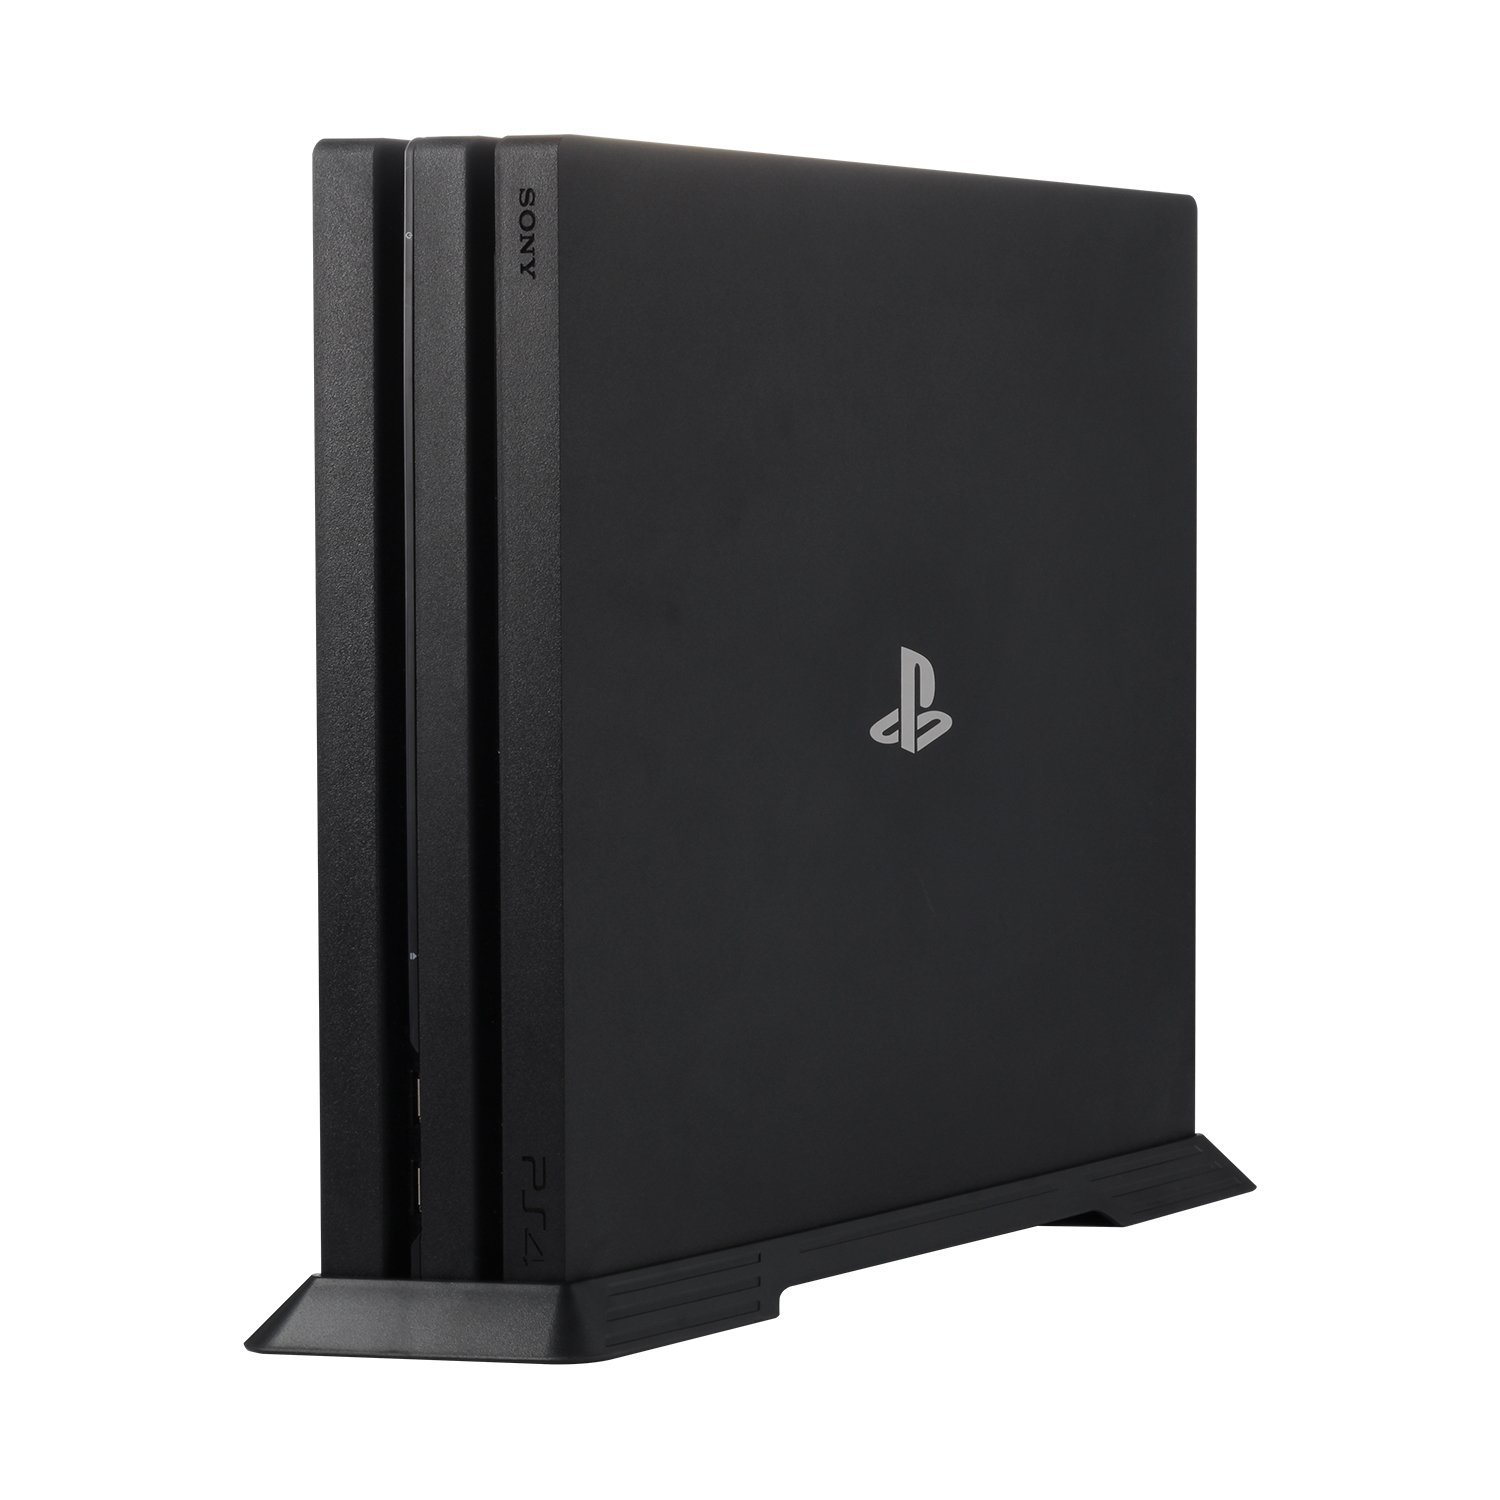 Chicago Playstation 4 Pro Repair Ps4 Hdmi Port How To Your Plasystation 3 Laser Get Free Estimate